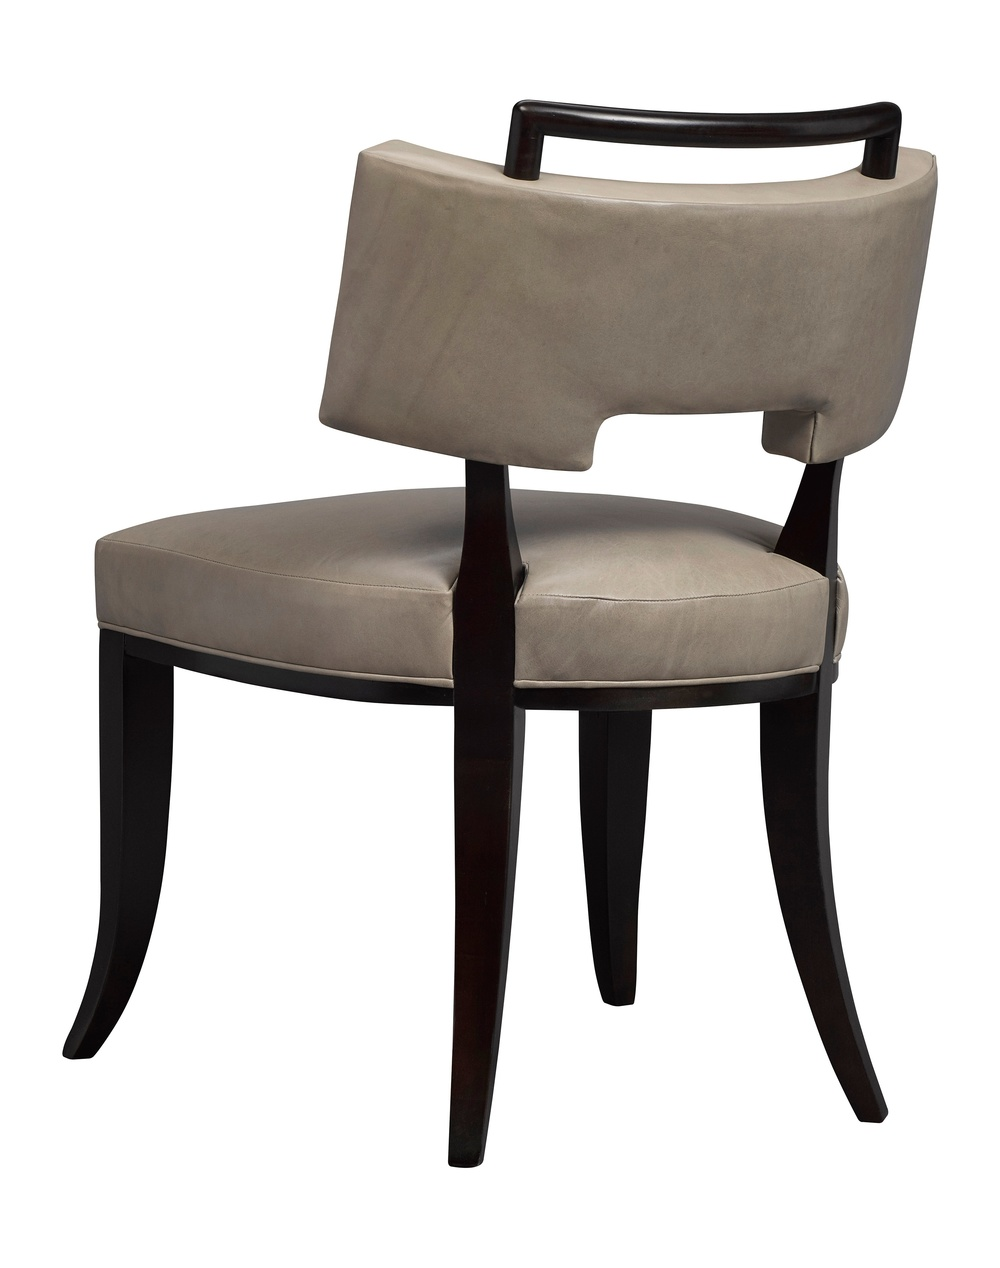 Hickory Chair - Saint Giorgio Dining Chair with Handle